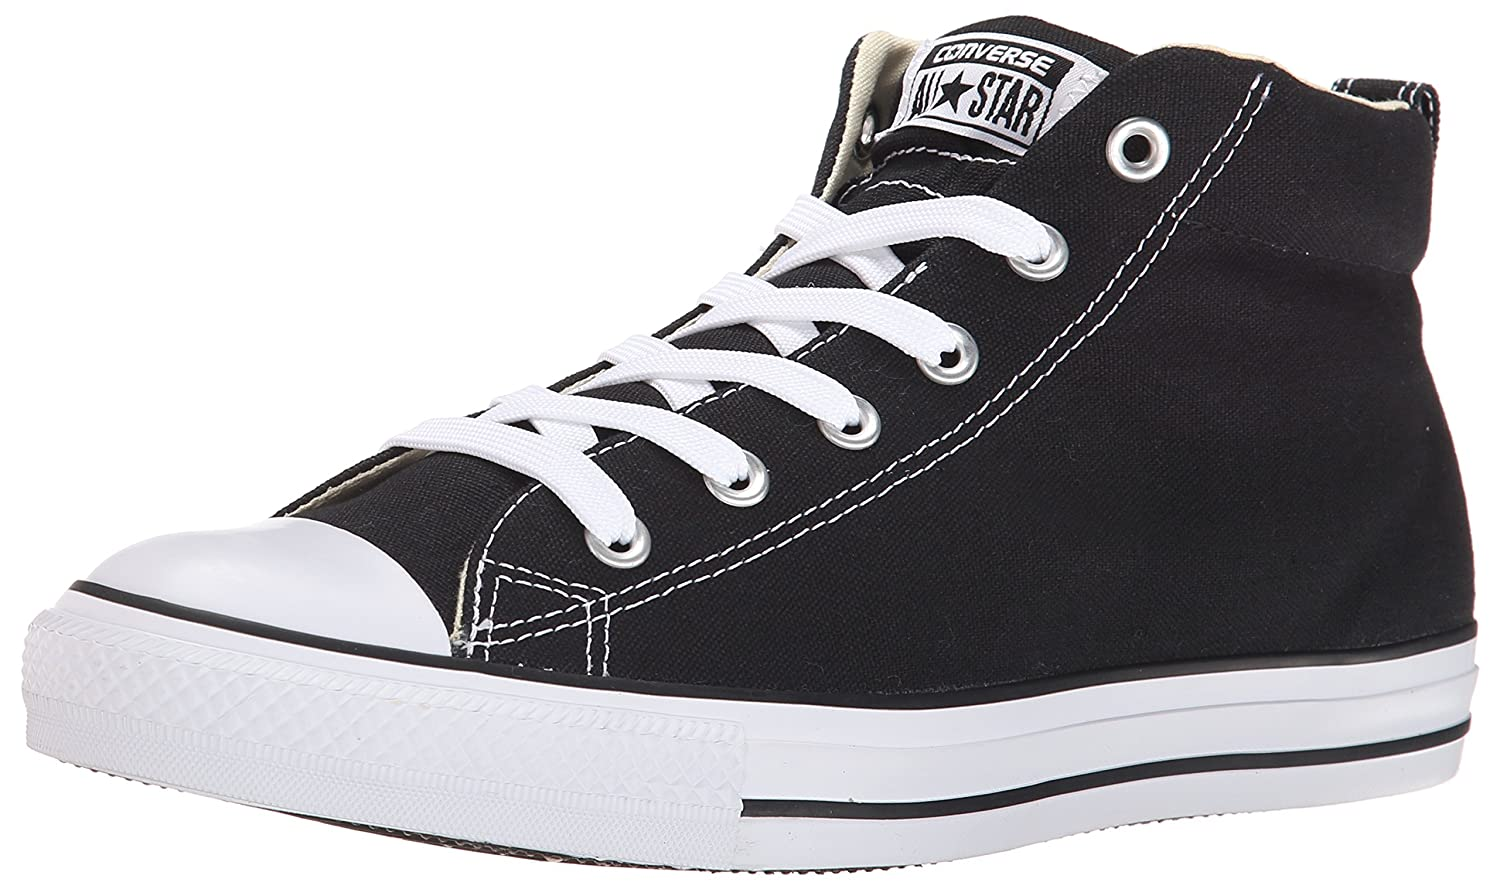 Converse Men's Street Canvas Mid Top Sneaker by Converse